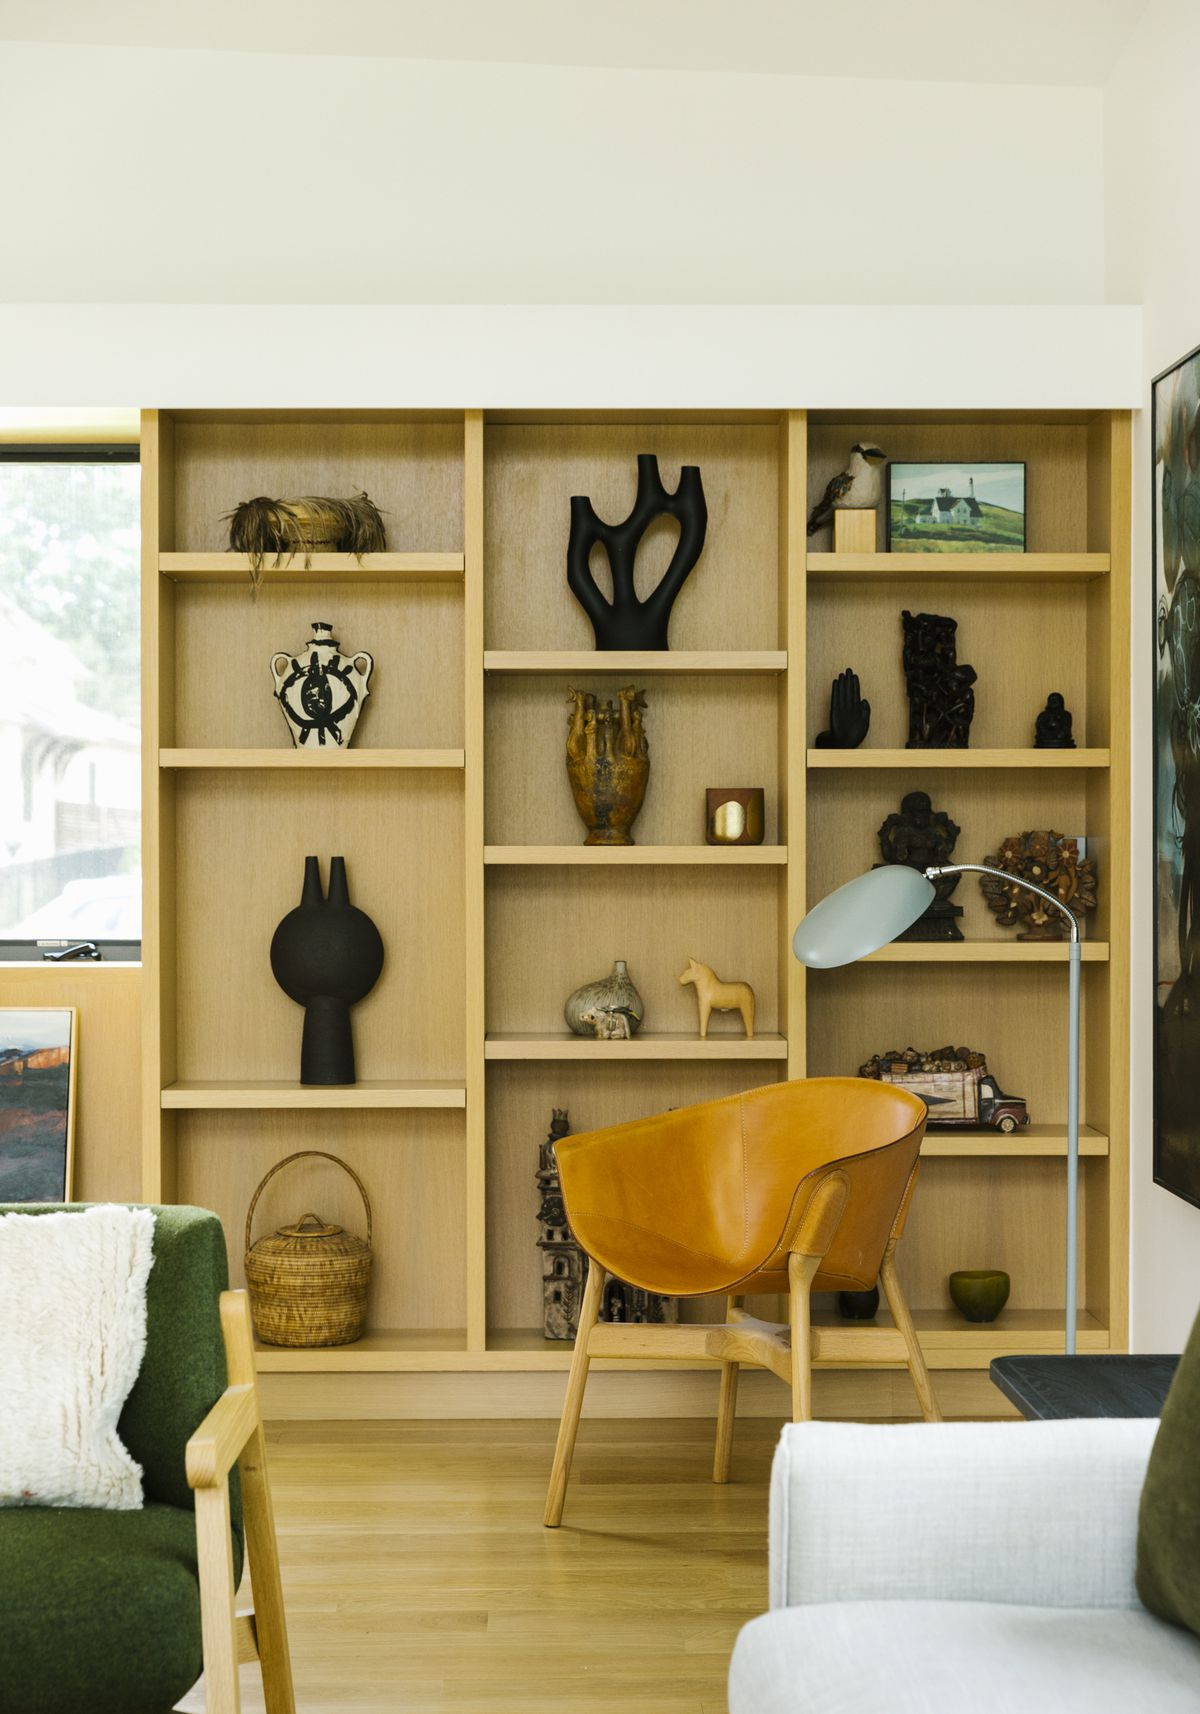 A chair and lamp sit in front of built-in wooden shelves, which are filled with sculptures, art, and other objects.